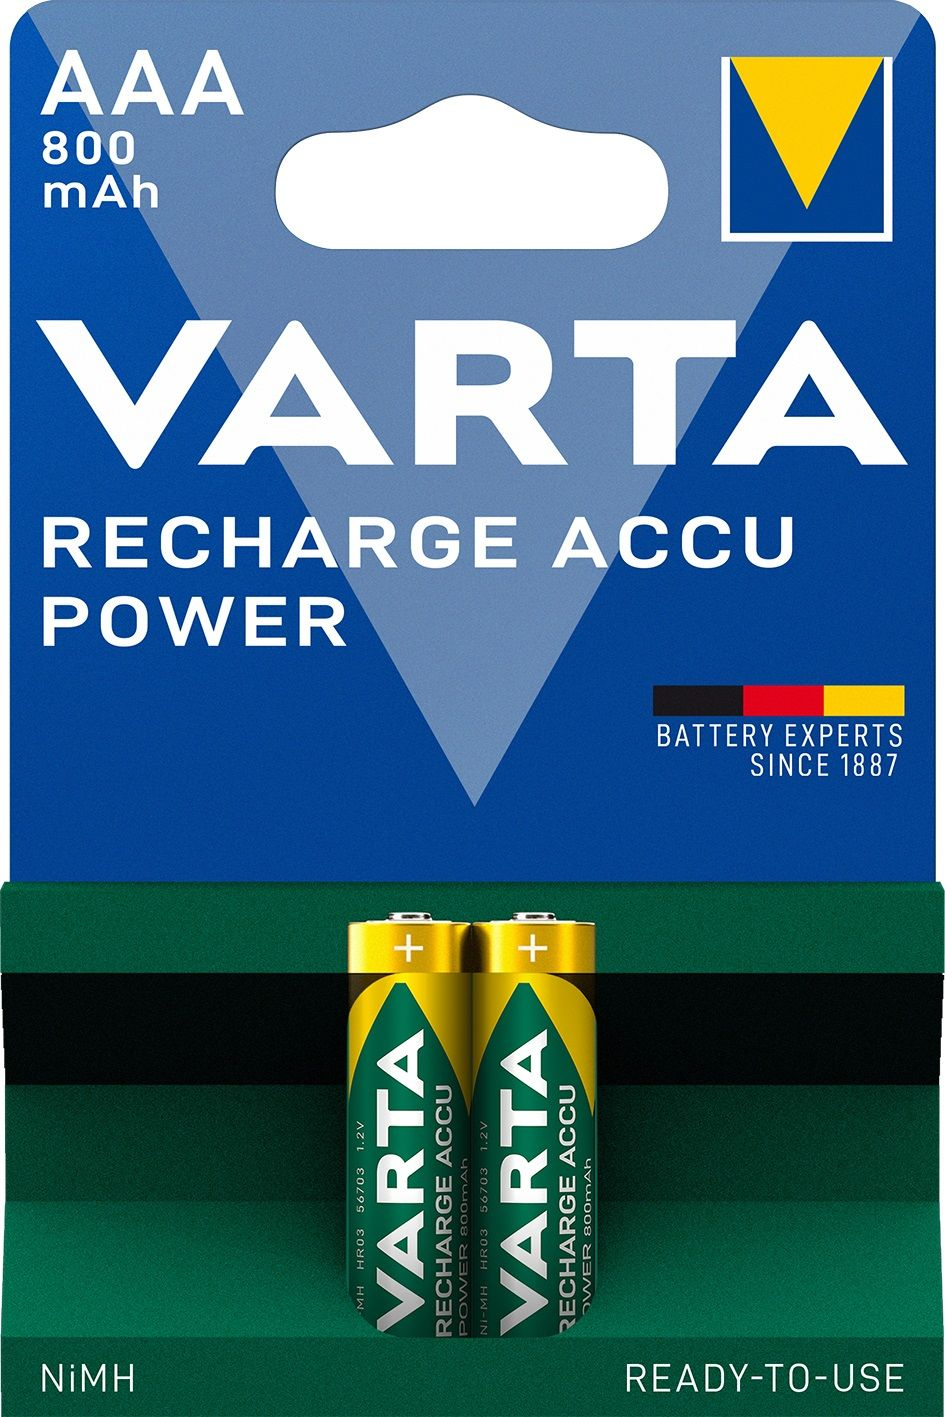 Varta Rechargeable Accu Ready To Use AAA (2 pz)